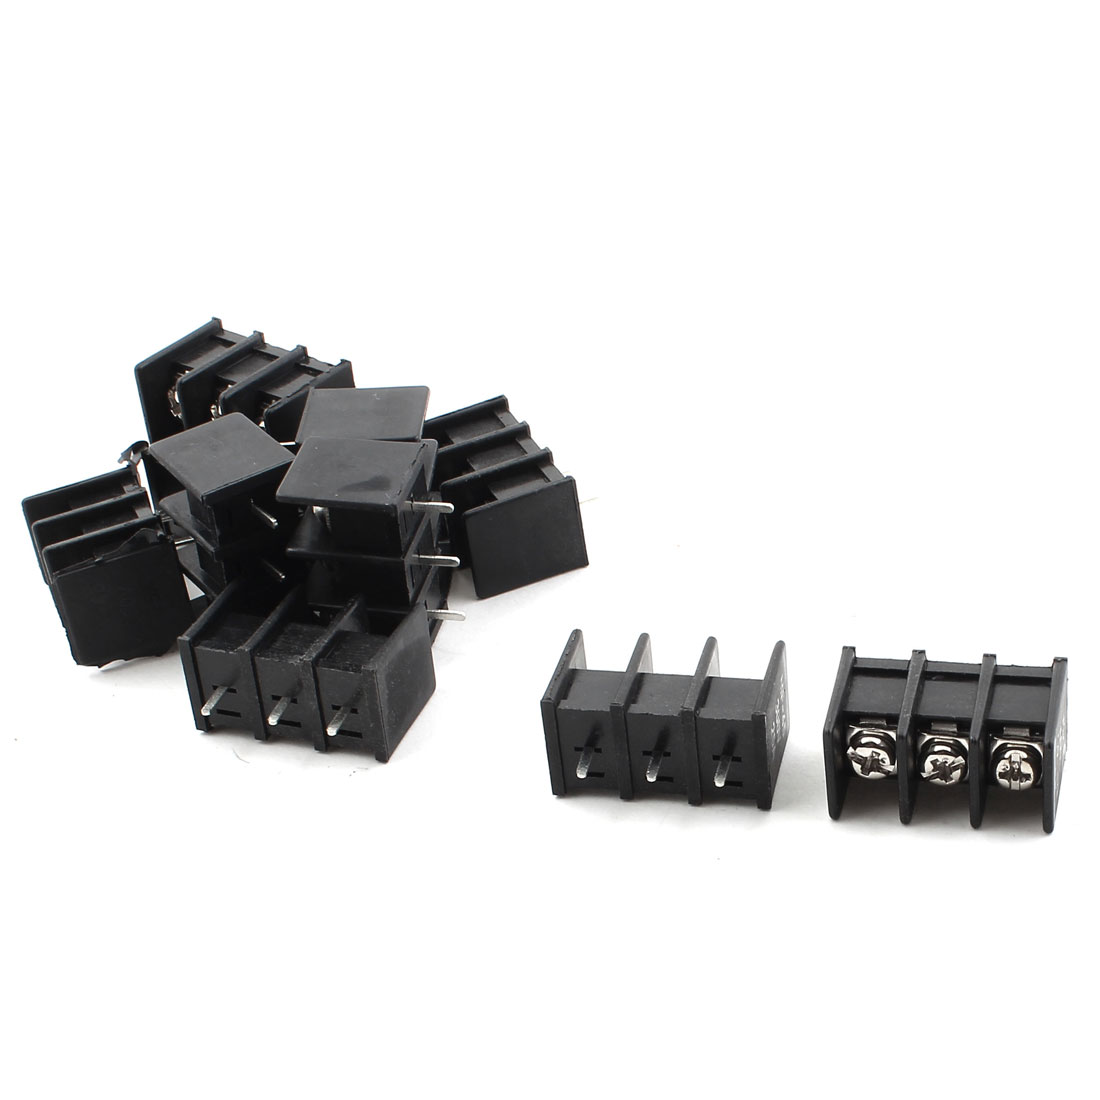 10pcs 8mm Pitch 3 Position PCB Screw Terminal Blocks Connector 300V 25A